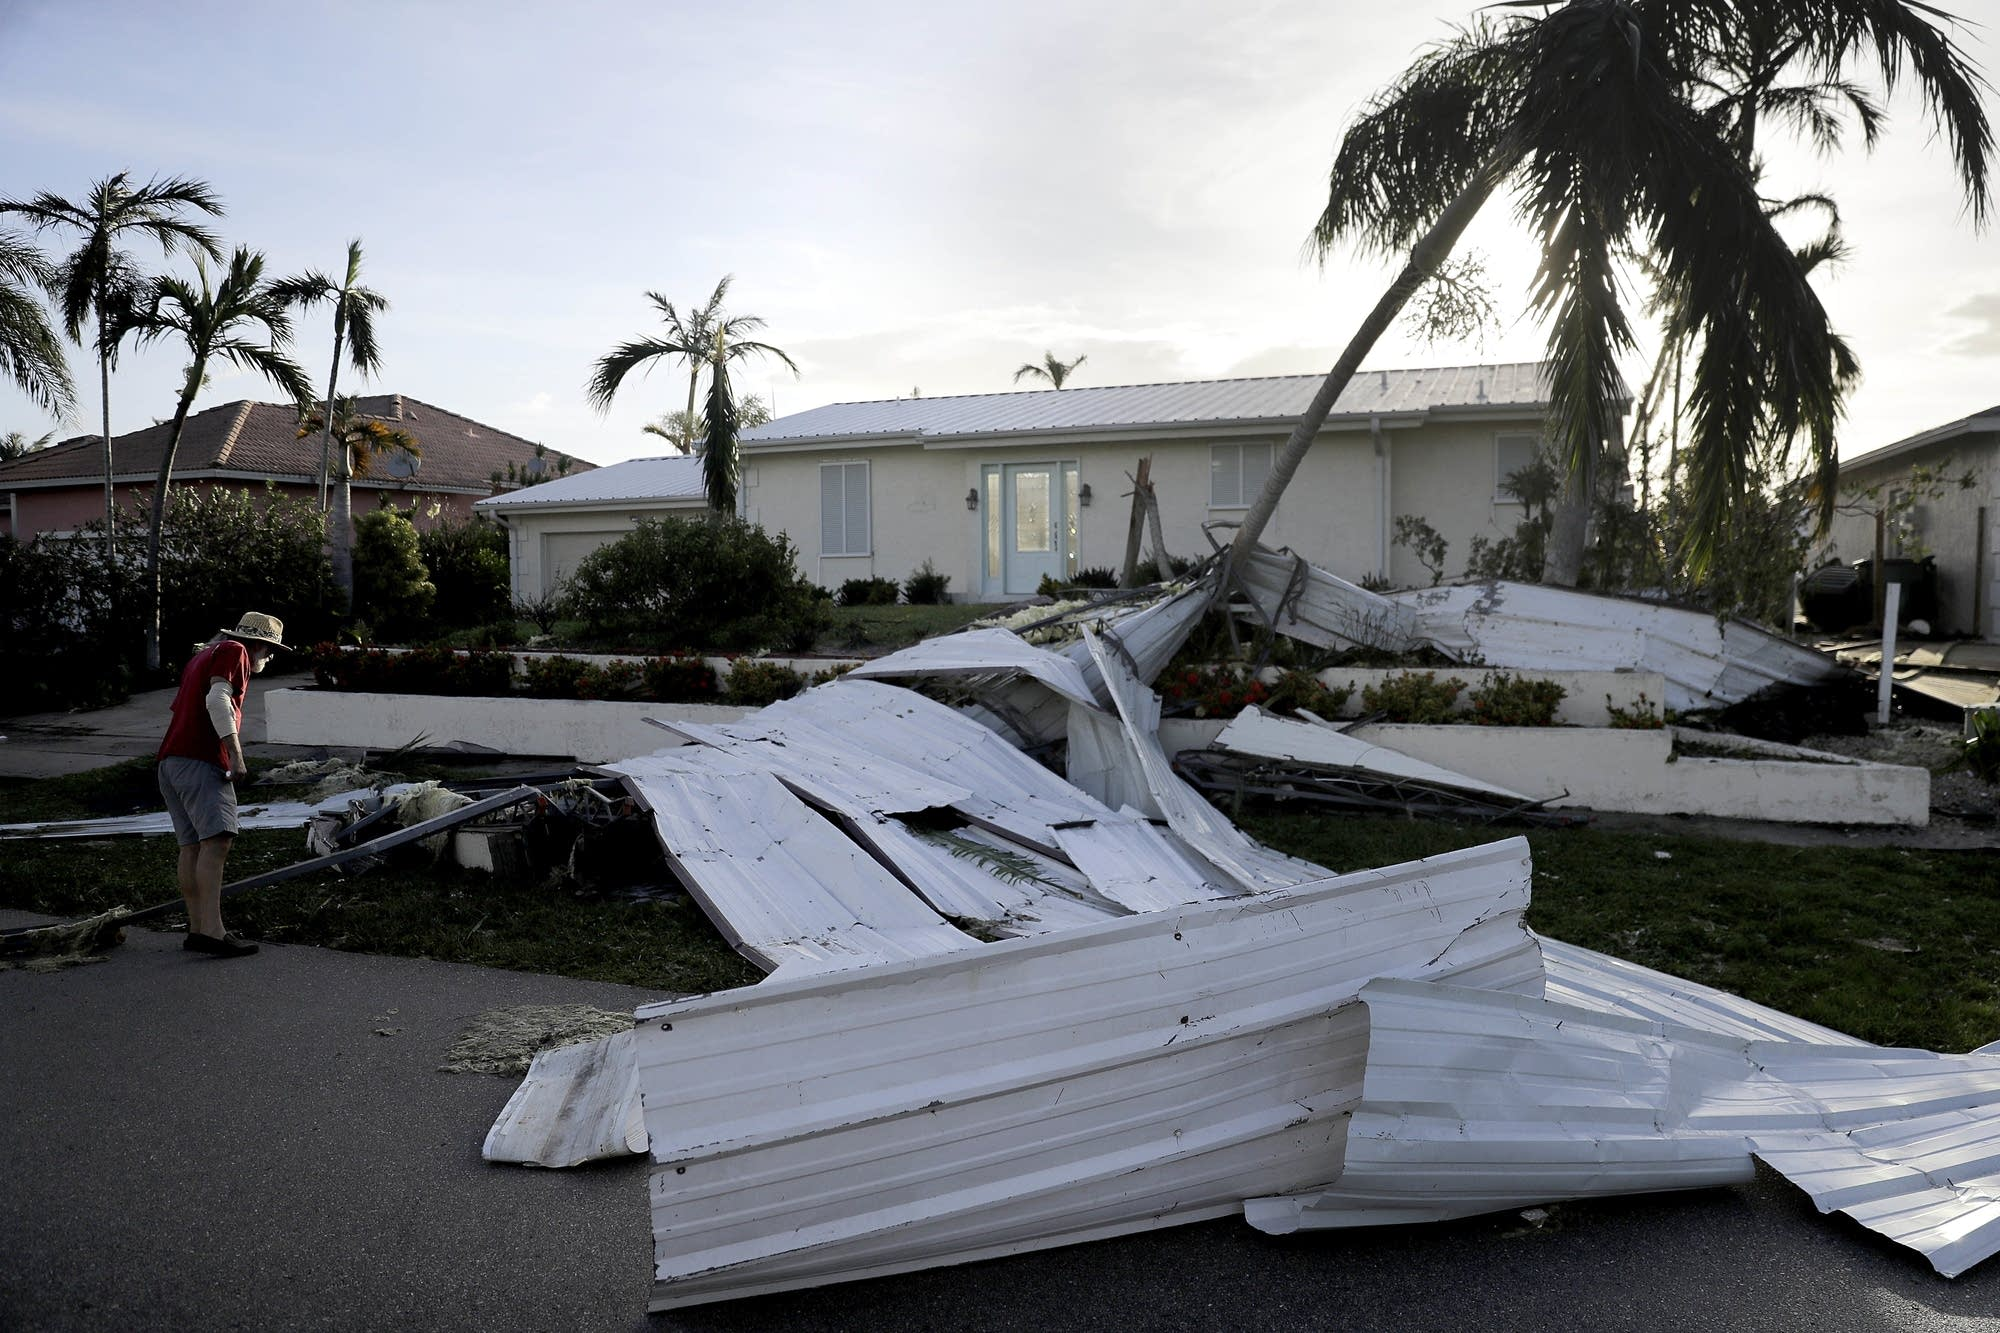 A roof is strewn across a home's lawn.